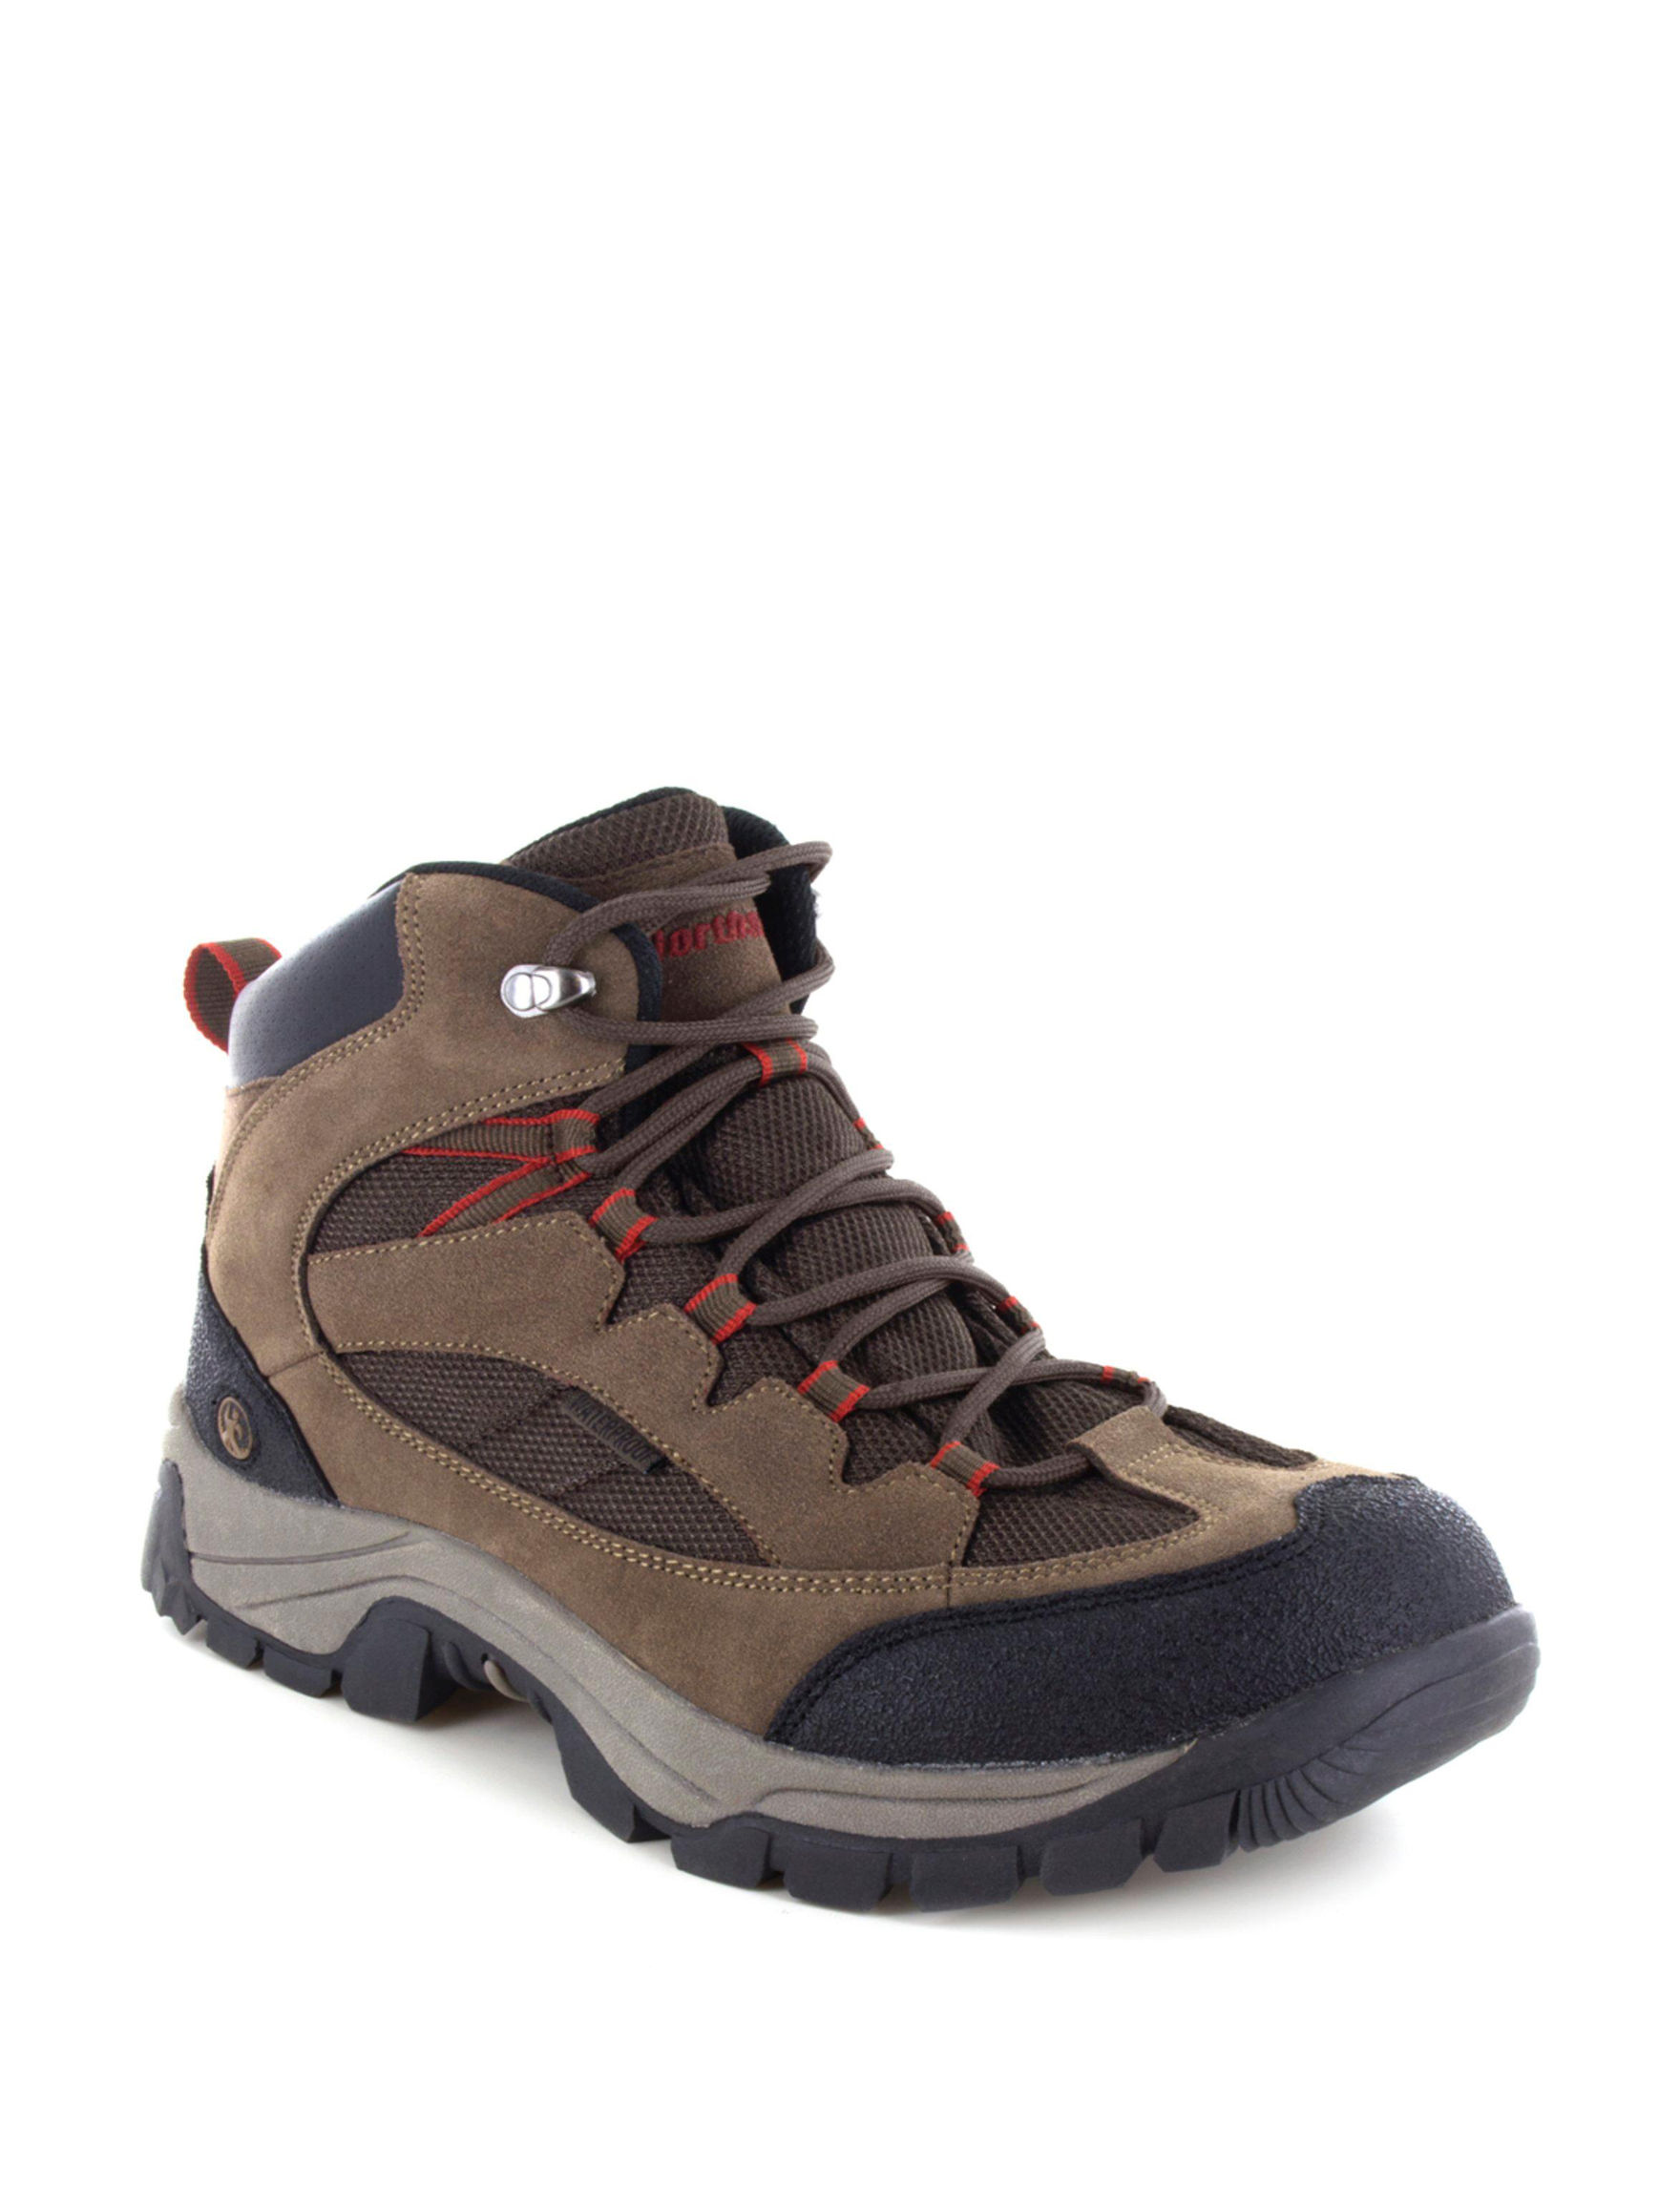 Northside Brown Winter Boots